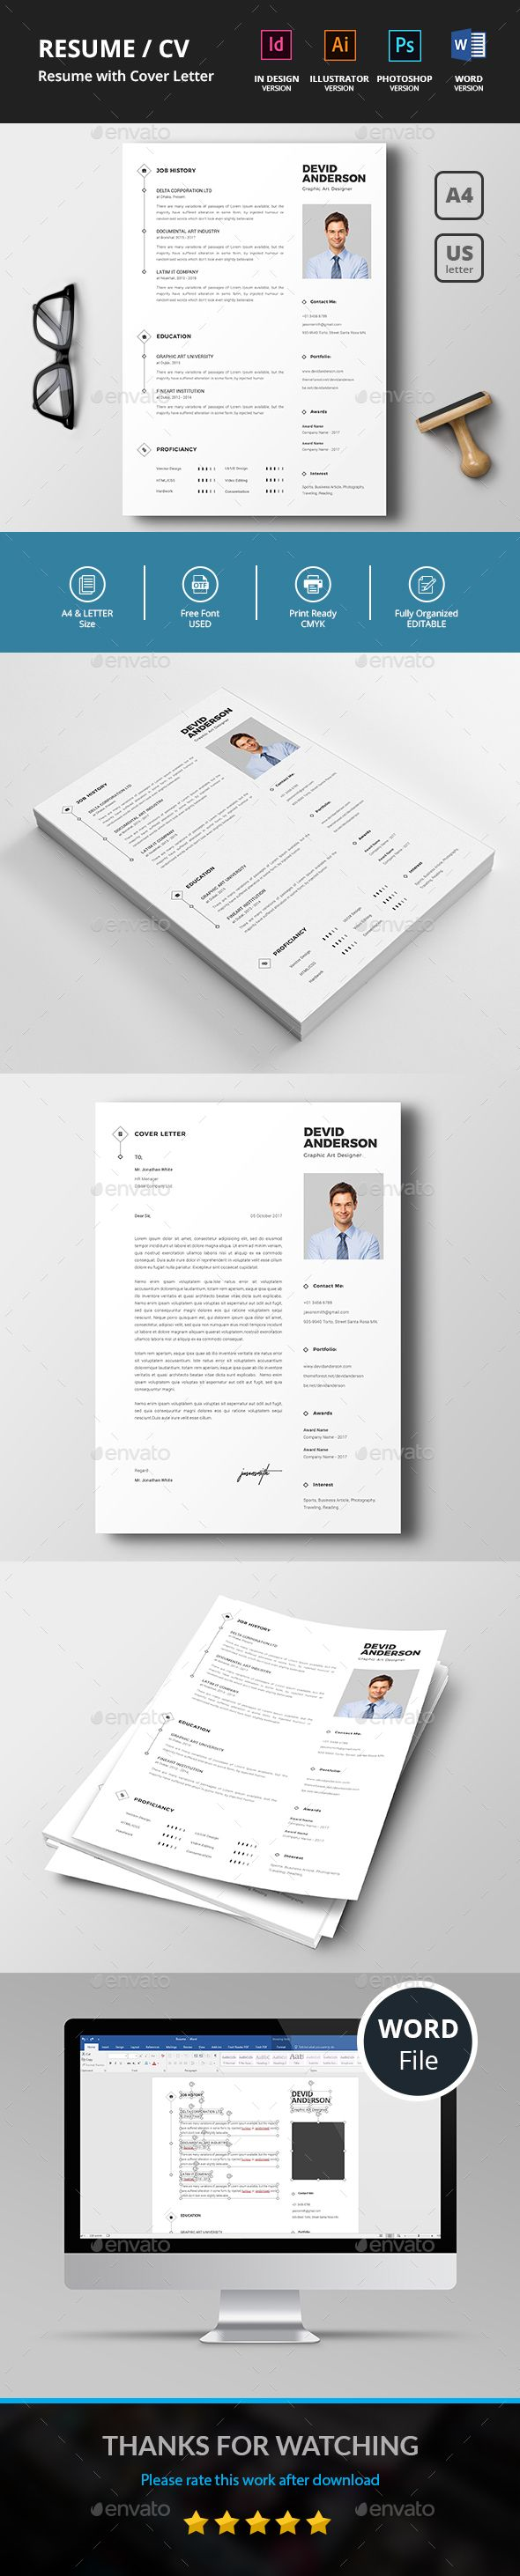 Resume / CV Template PSD, Vector EPS, InDesign INDD, AI Illustrator, MS Word - A4 & US Letter Sizes